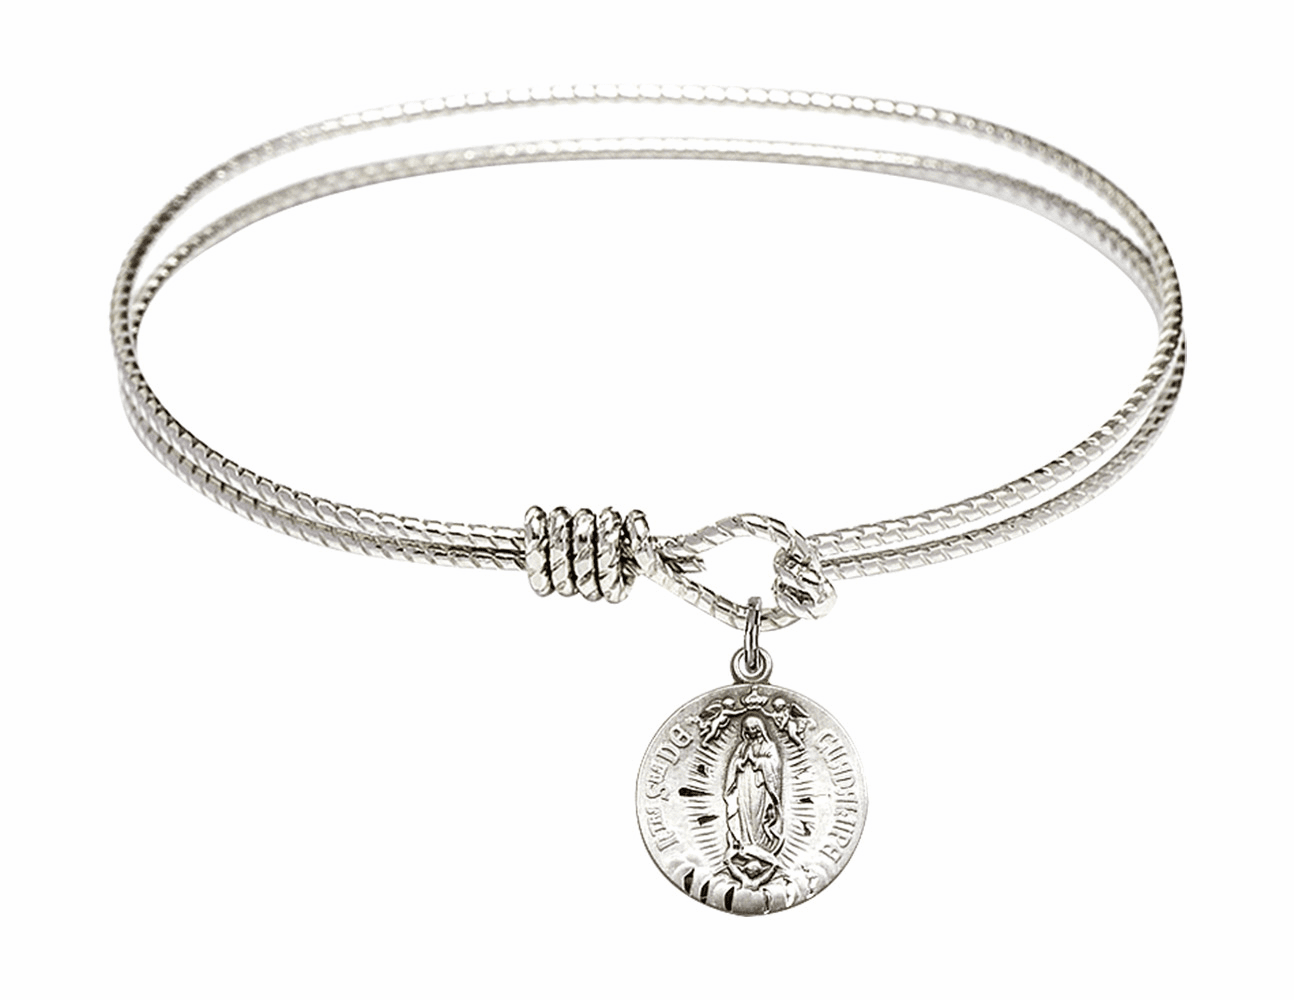 Round Twist Eye Hook Bangle Bracelet w/Our Lady of Guadalupe Sterling Silver Charm by Bliss Mfg